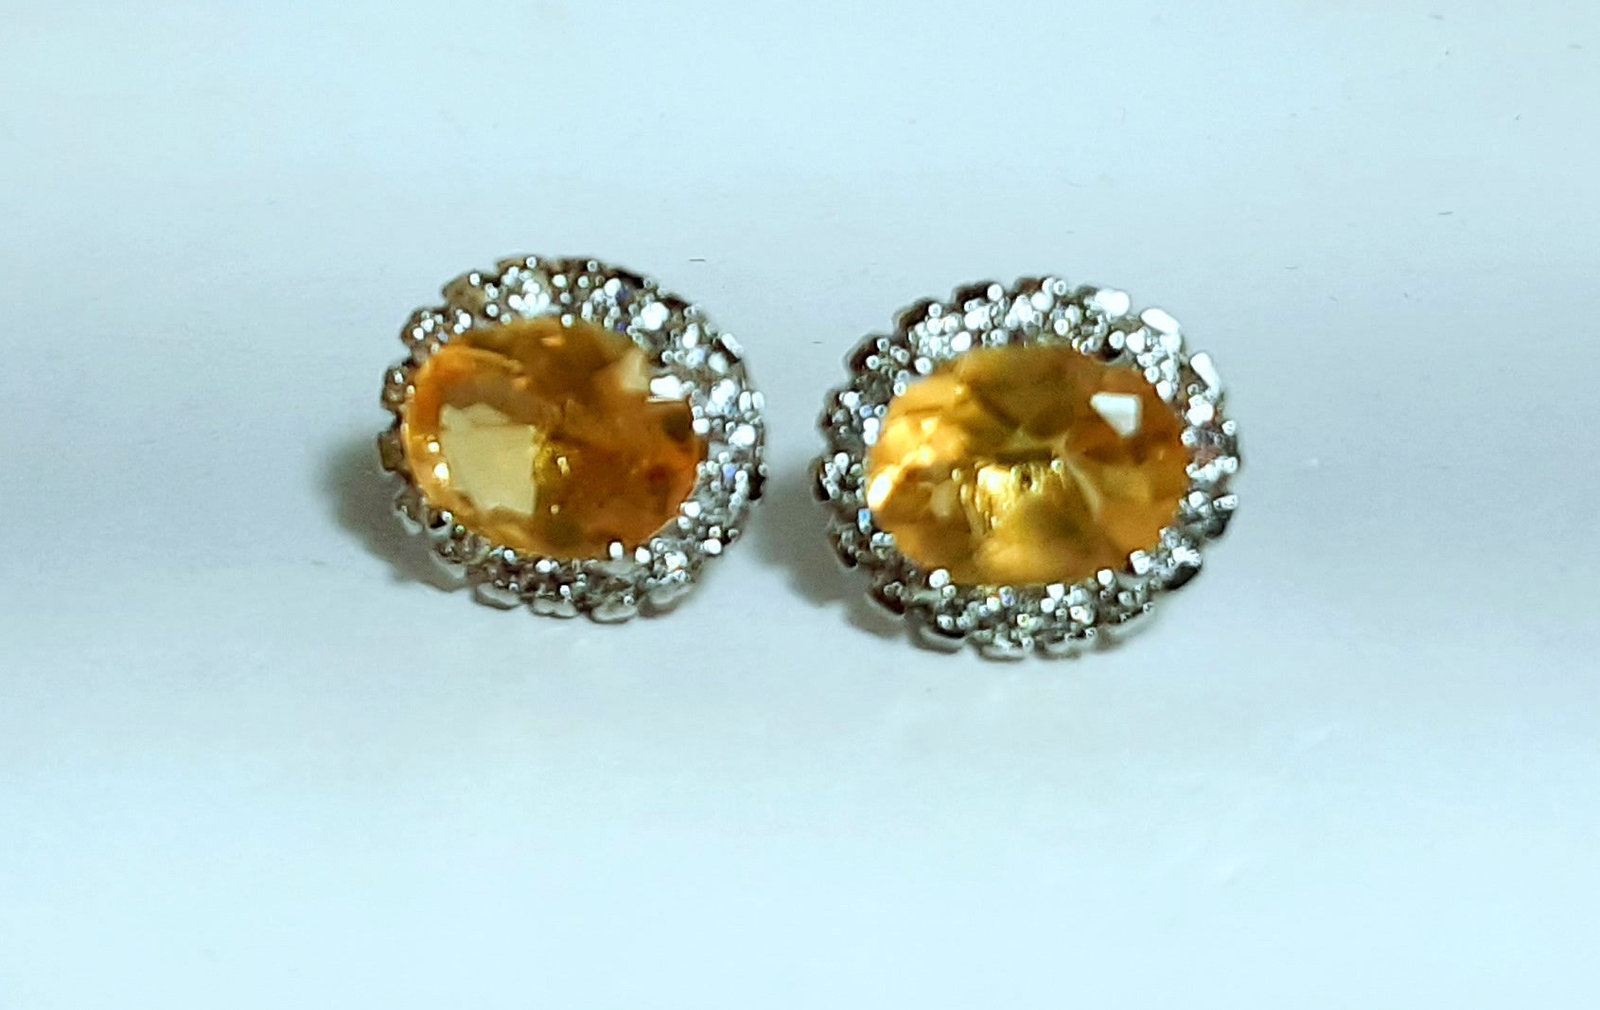 925 Sterling Silver Natural A+ Quality Citrine And Cz Gemstone Handcrafted Desig image 4